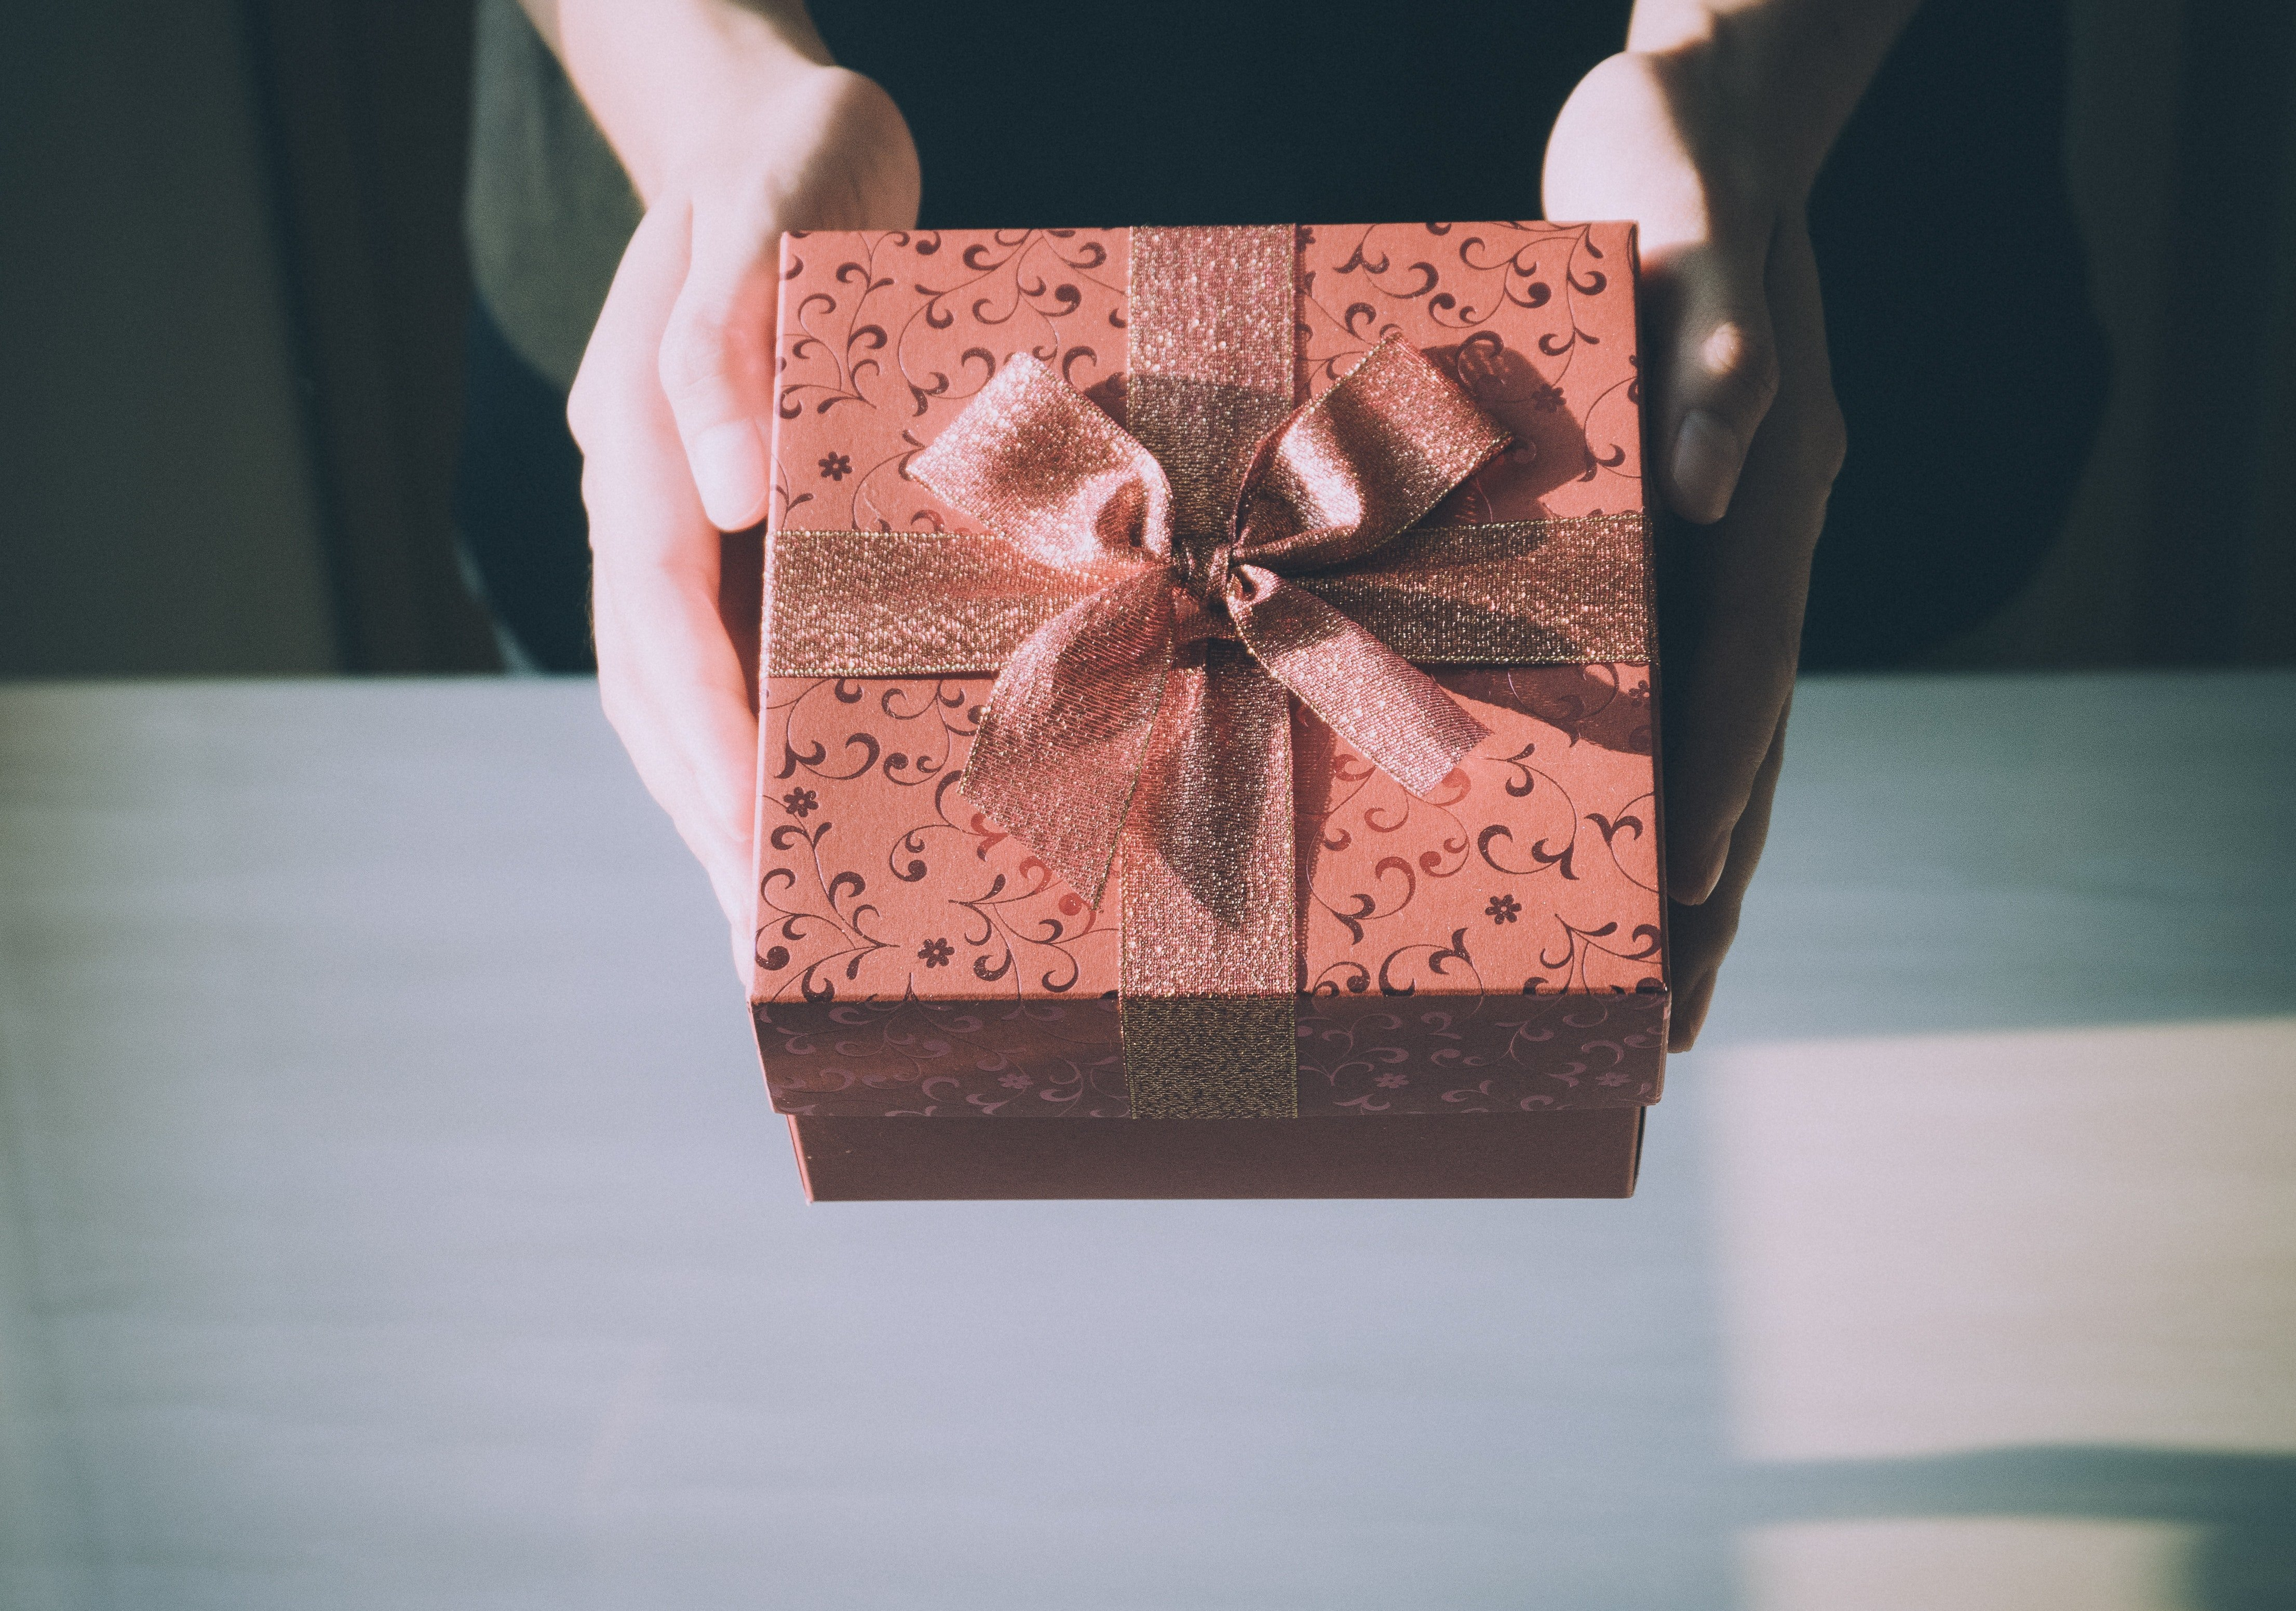 My wife was right. The box cleared my doubts. | Photo: Pexels